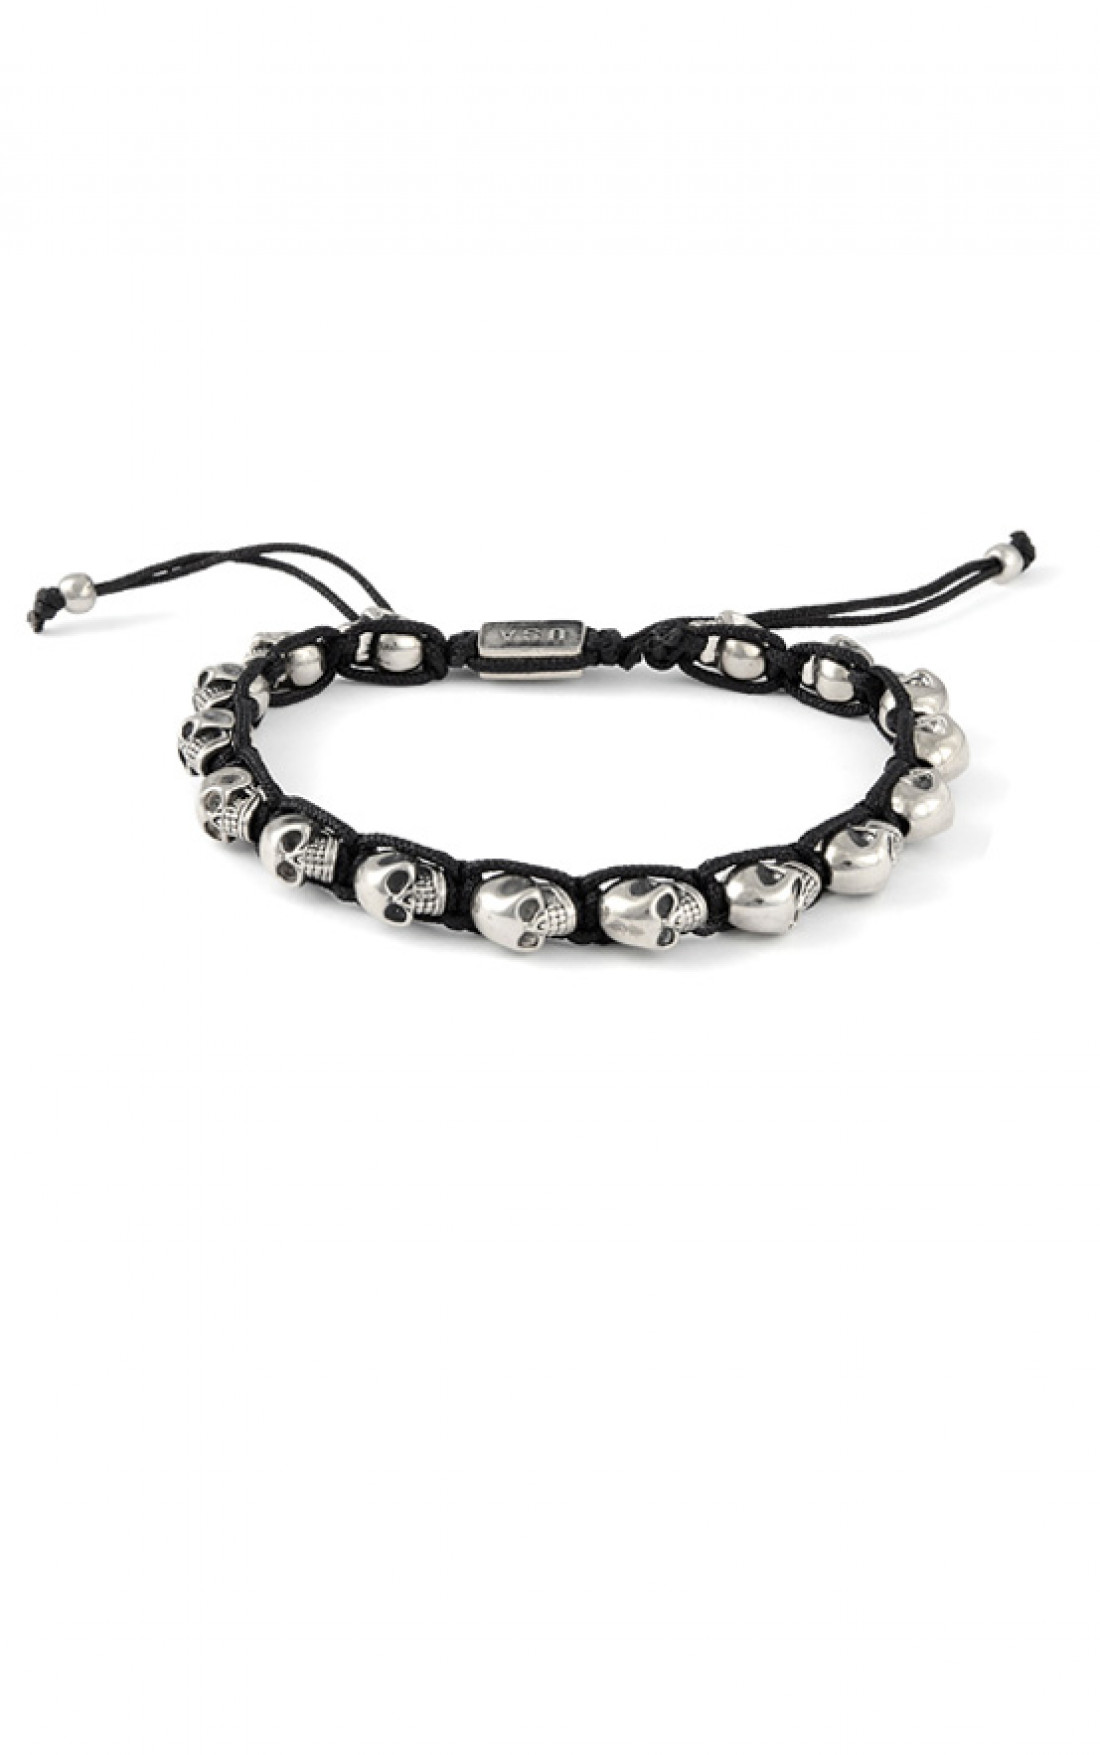 King Baby - Black Macrame Bracelet with Alloy Skulls (Q42-8184)